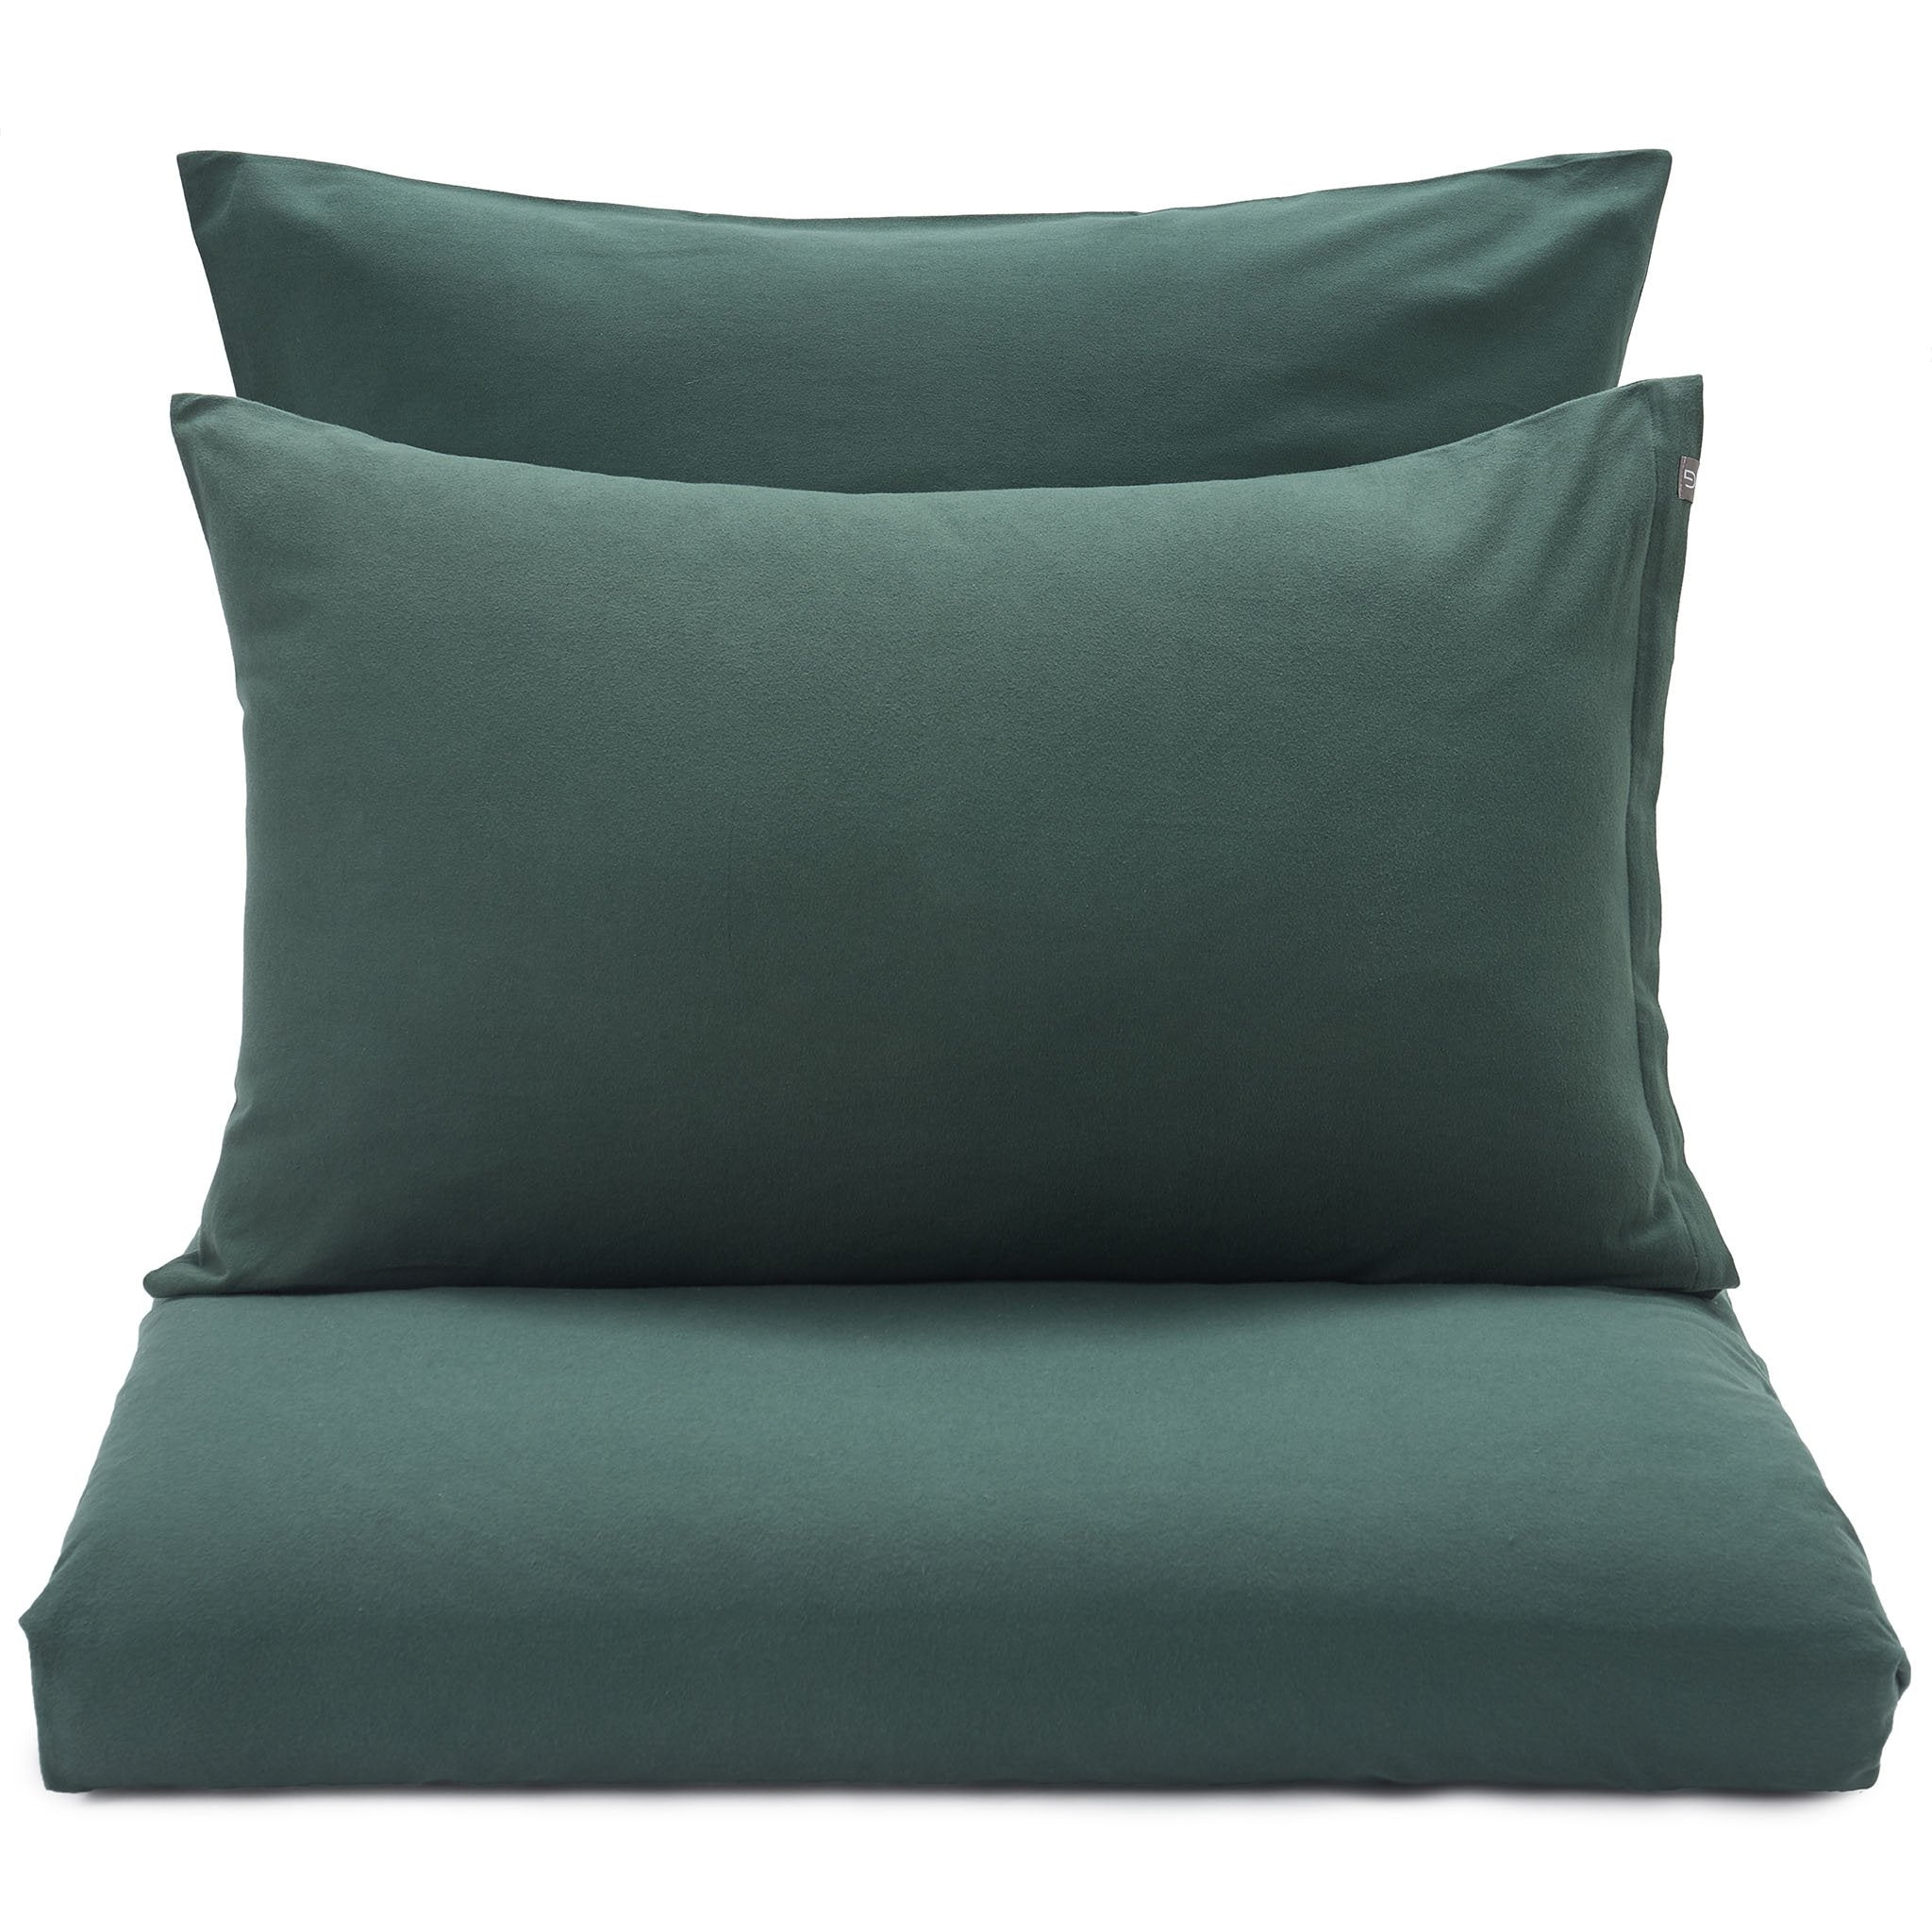 Montrose Flannel Bed Linen dark green, 100% cotton